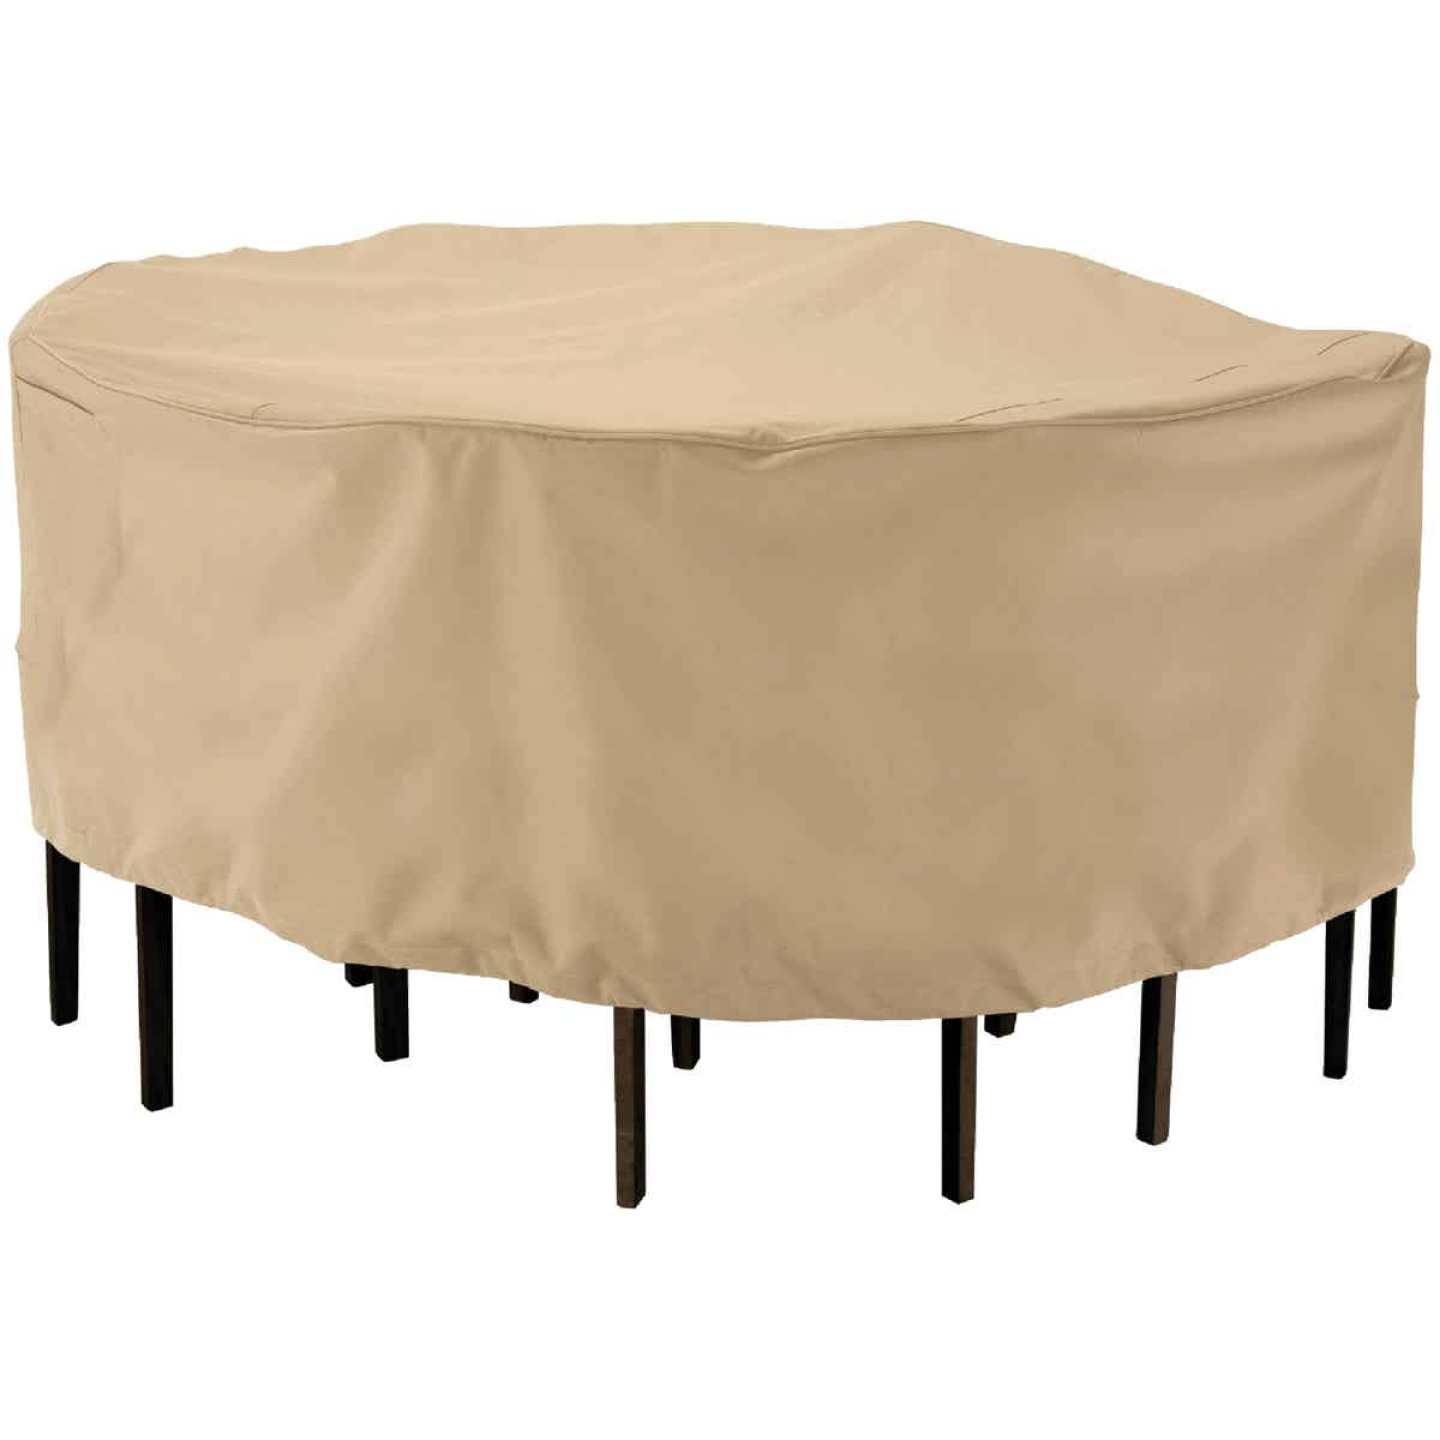 Classic Accessories 23 In. H. x 94 In. D. Tan Polyester/PVC Table Cover Image 1